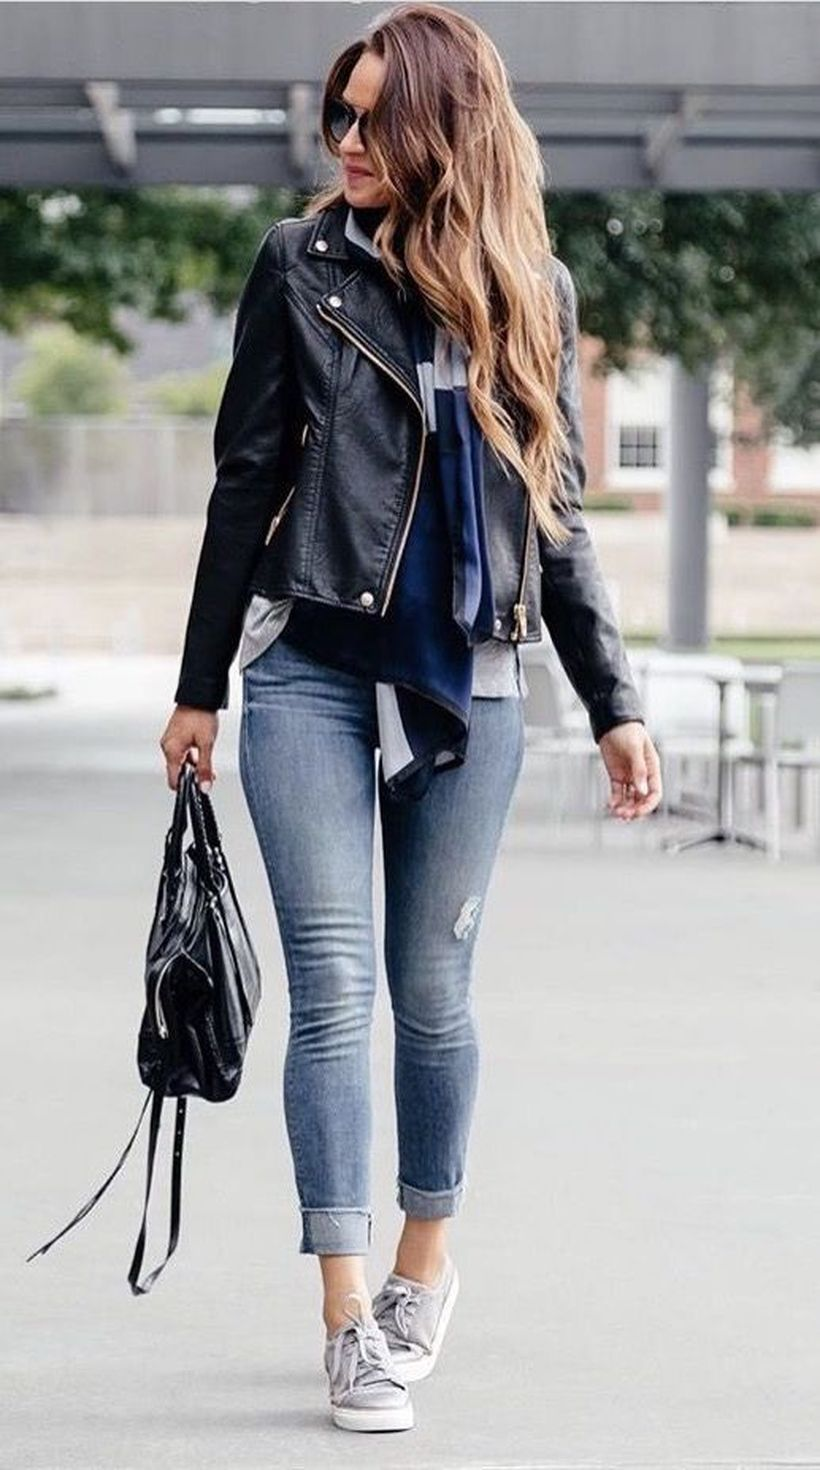 Black-leather-jacket-and-blue-jeans